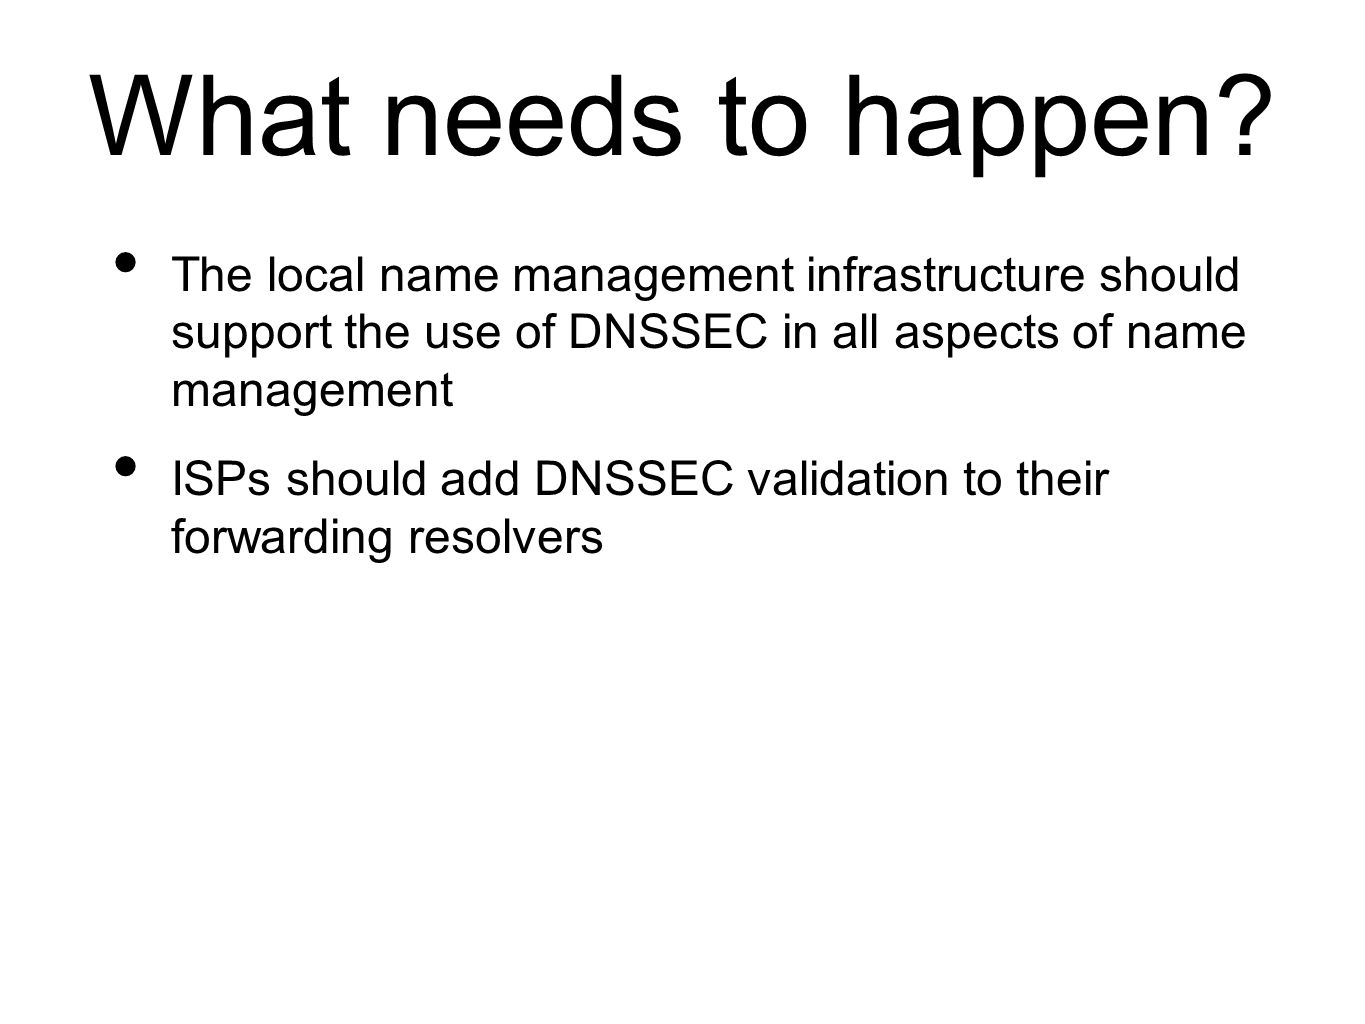 What needs to happen? The local name management infrastructure should support the use of DNSSEC in all aspects of name management ISPs should add DNSS